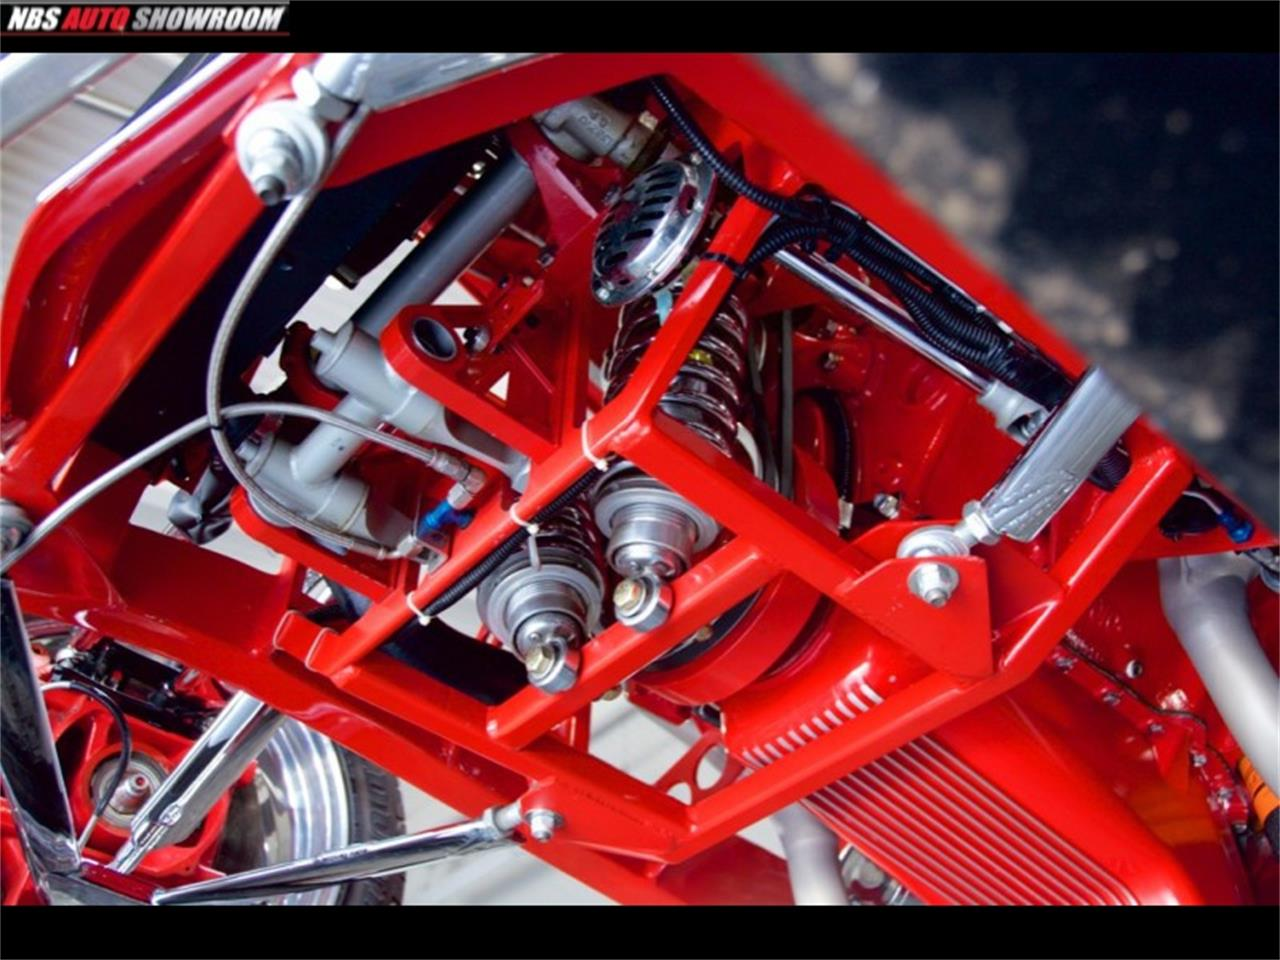 Large Picture of 1932 Ford Roadster - $37,546.00 Offered by NBS Auto Showroom - QY4R